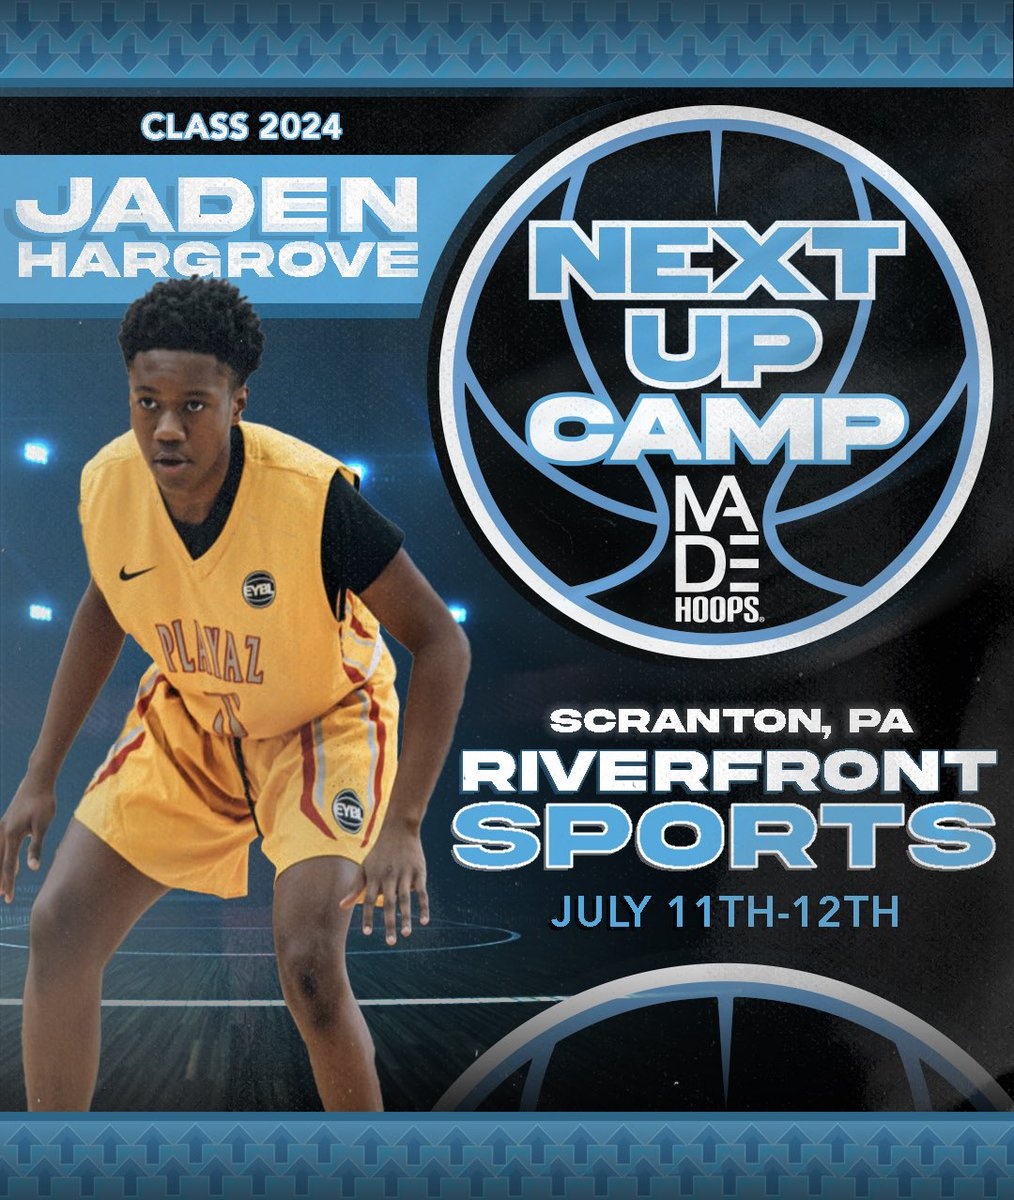 2025 Jaden Hargrove is LOCKED IN 🔐 and ready to show out at Next Up Camp! 💪  Are YOU Next Up? It's time to #CreateYourName.  🗓: July 11th-12th, 18th-19th, & 25th-26th ⛹️: Classes 2021-2026 🏟: Riverfront Sports 📍: Scranton, PA 🎥: Live Streamed  🎟: https://t.co/Pwy8j4Nvqa https://t.co/oL2SngnRwg